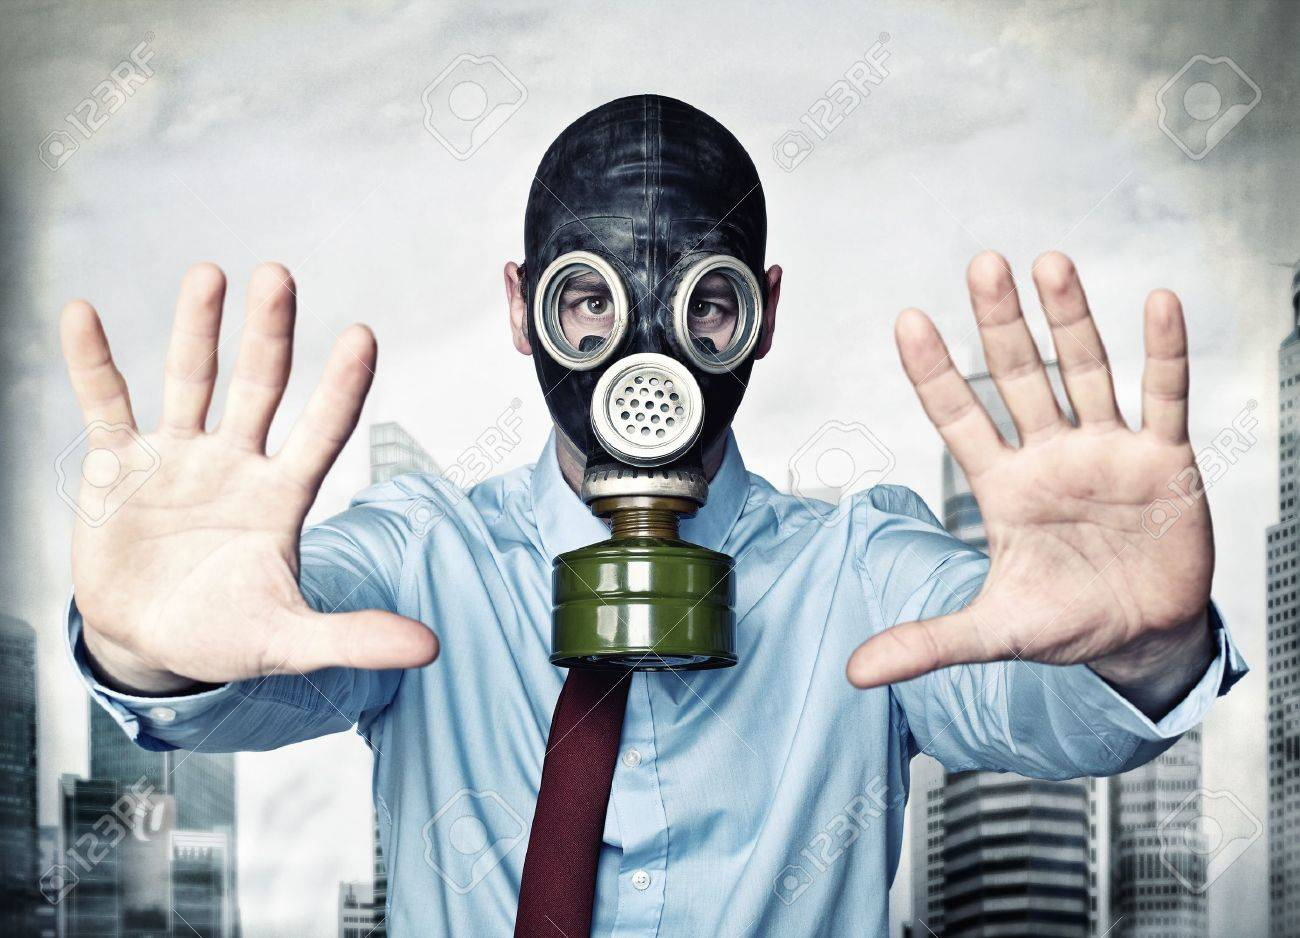 businessman with gas mask stop posture - 14035392